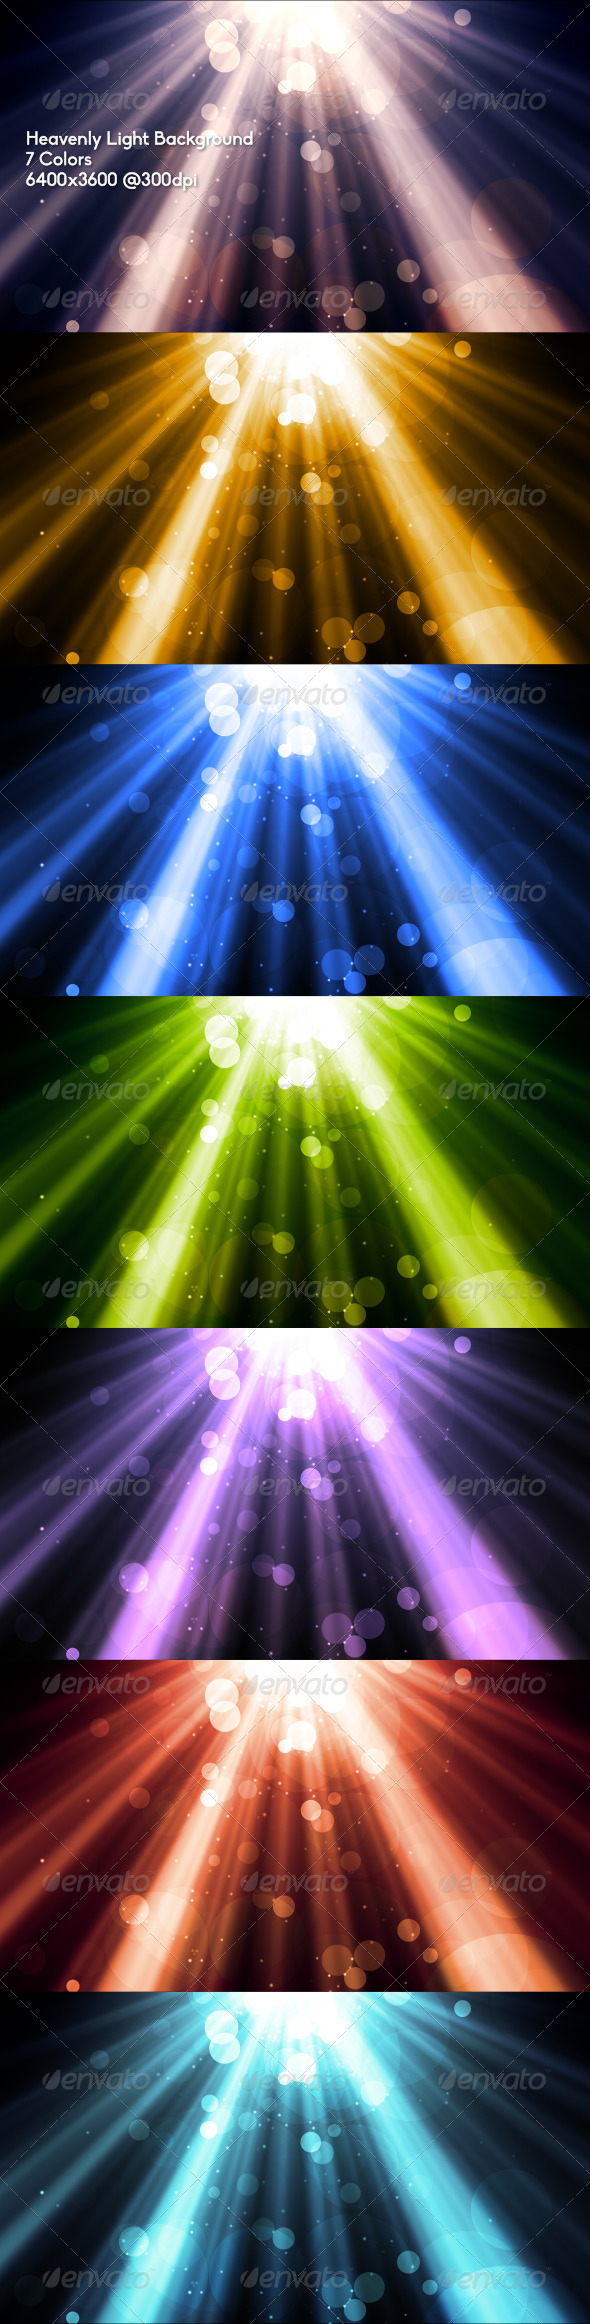 GraphicRiver Heavenly Light Background 6604568